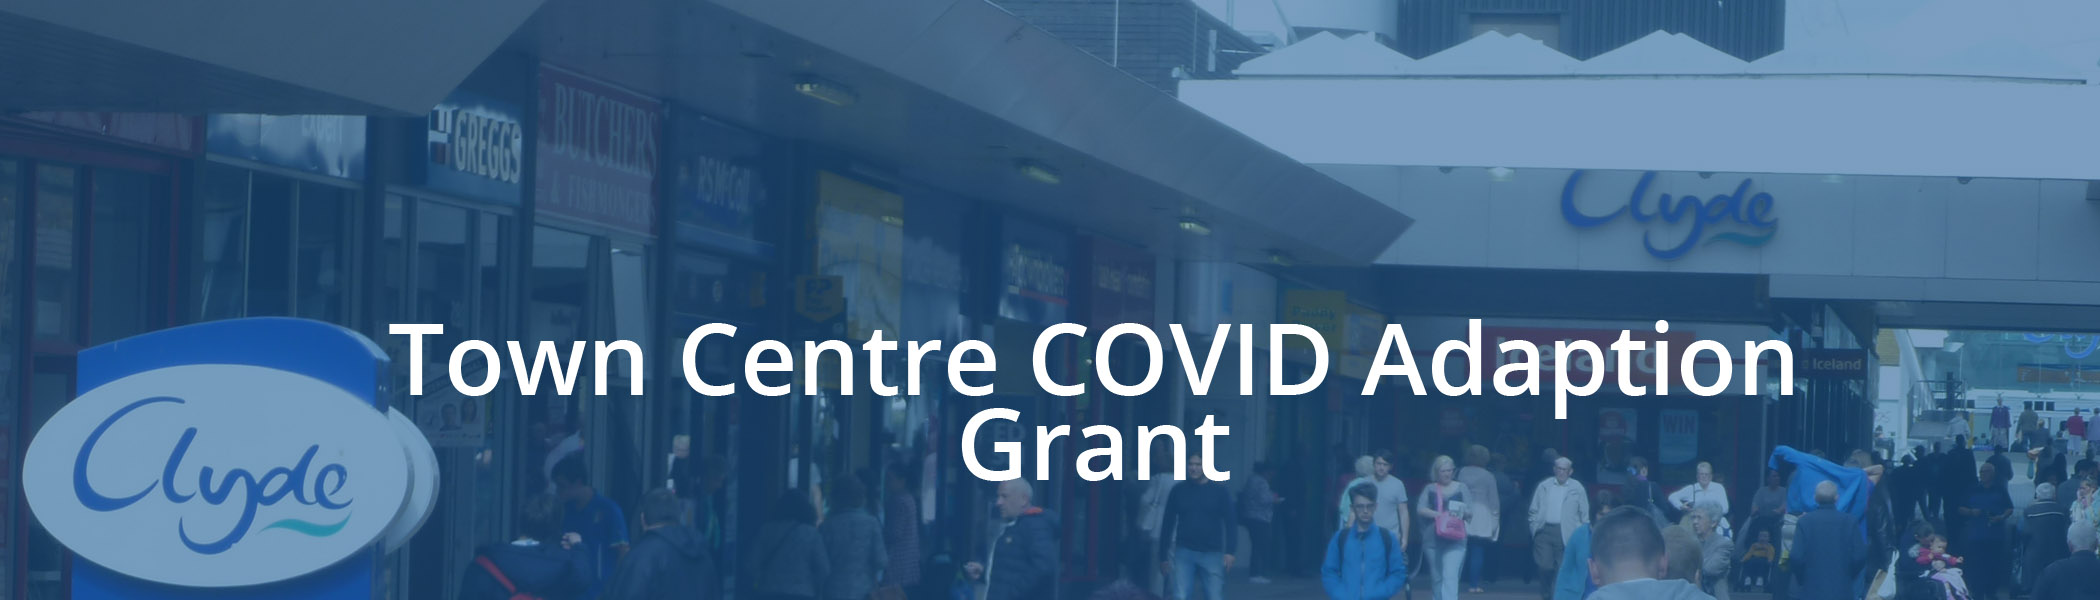 Clydebank Town Centre COVID Adaption Grant